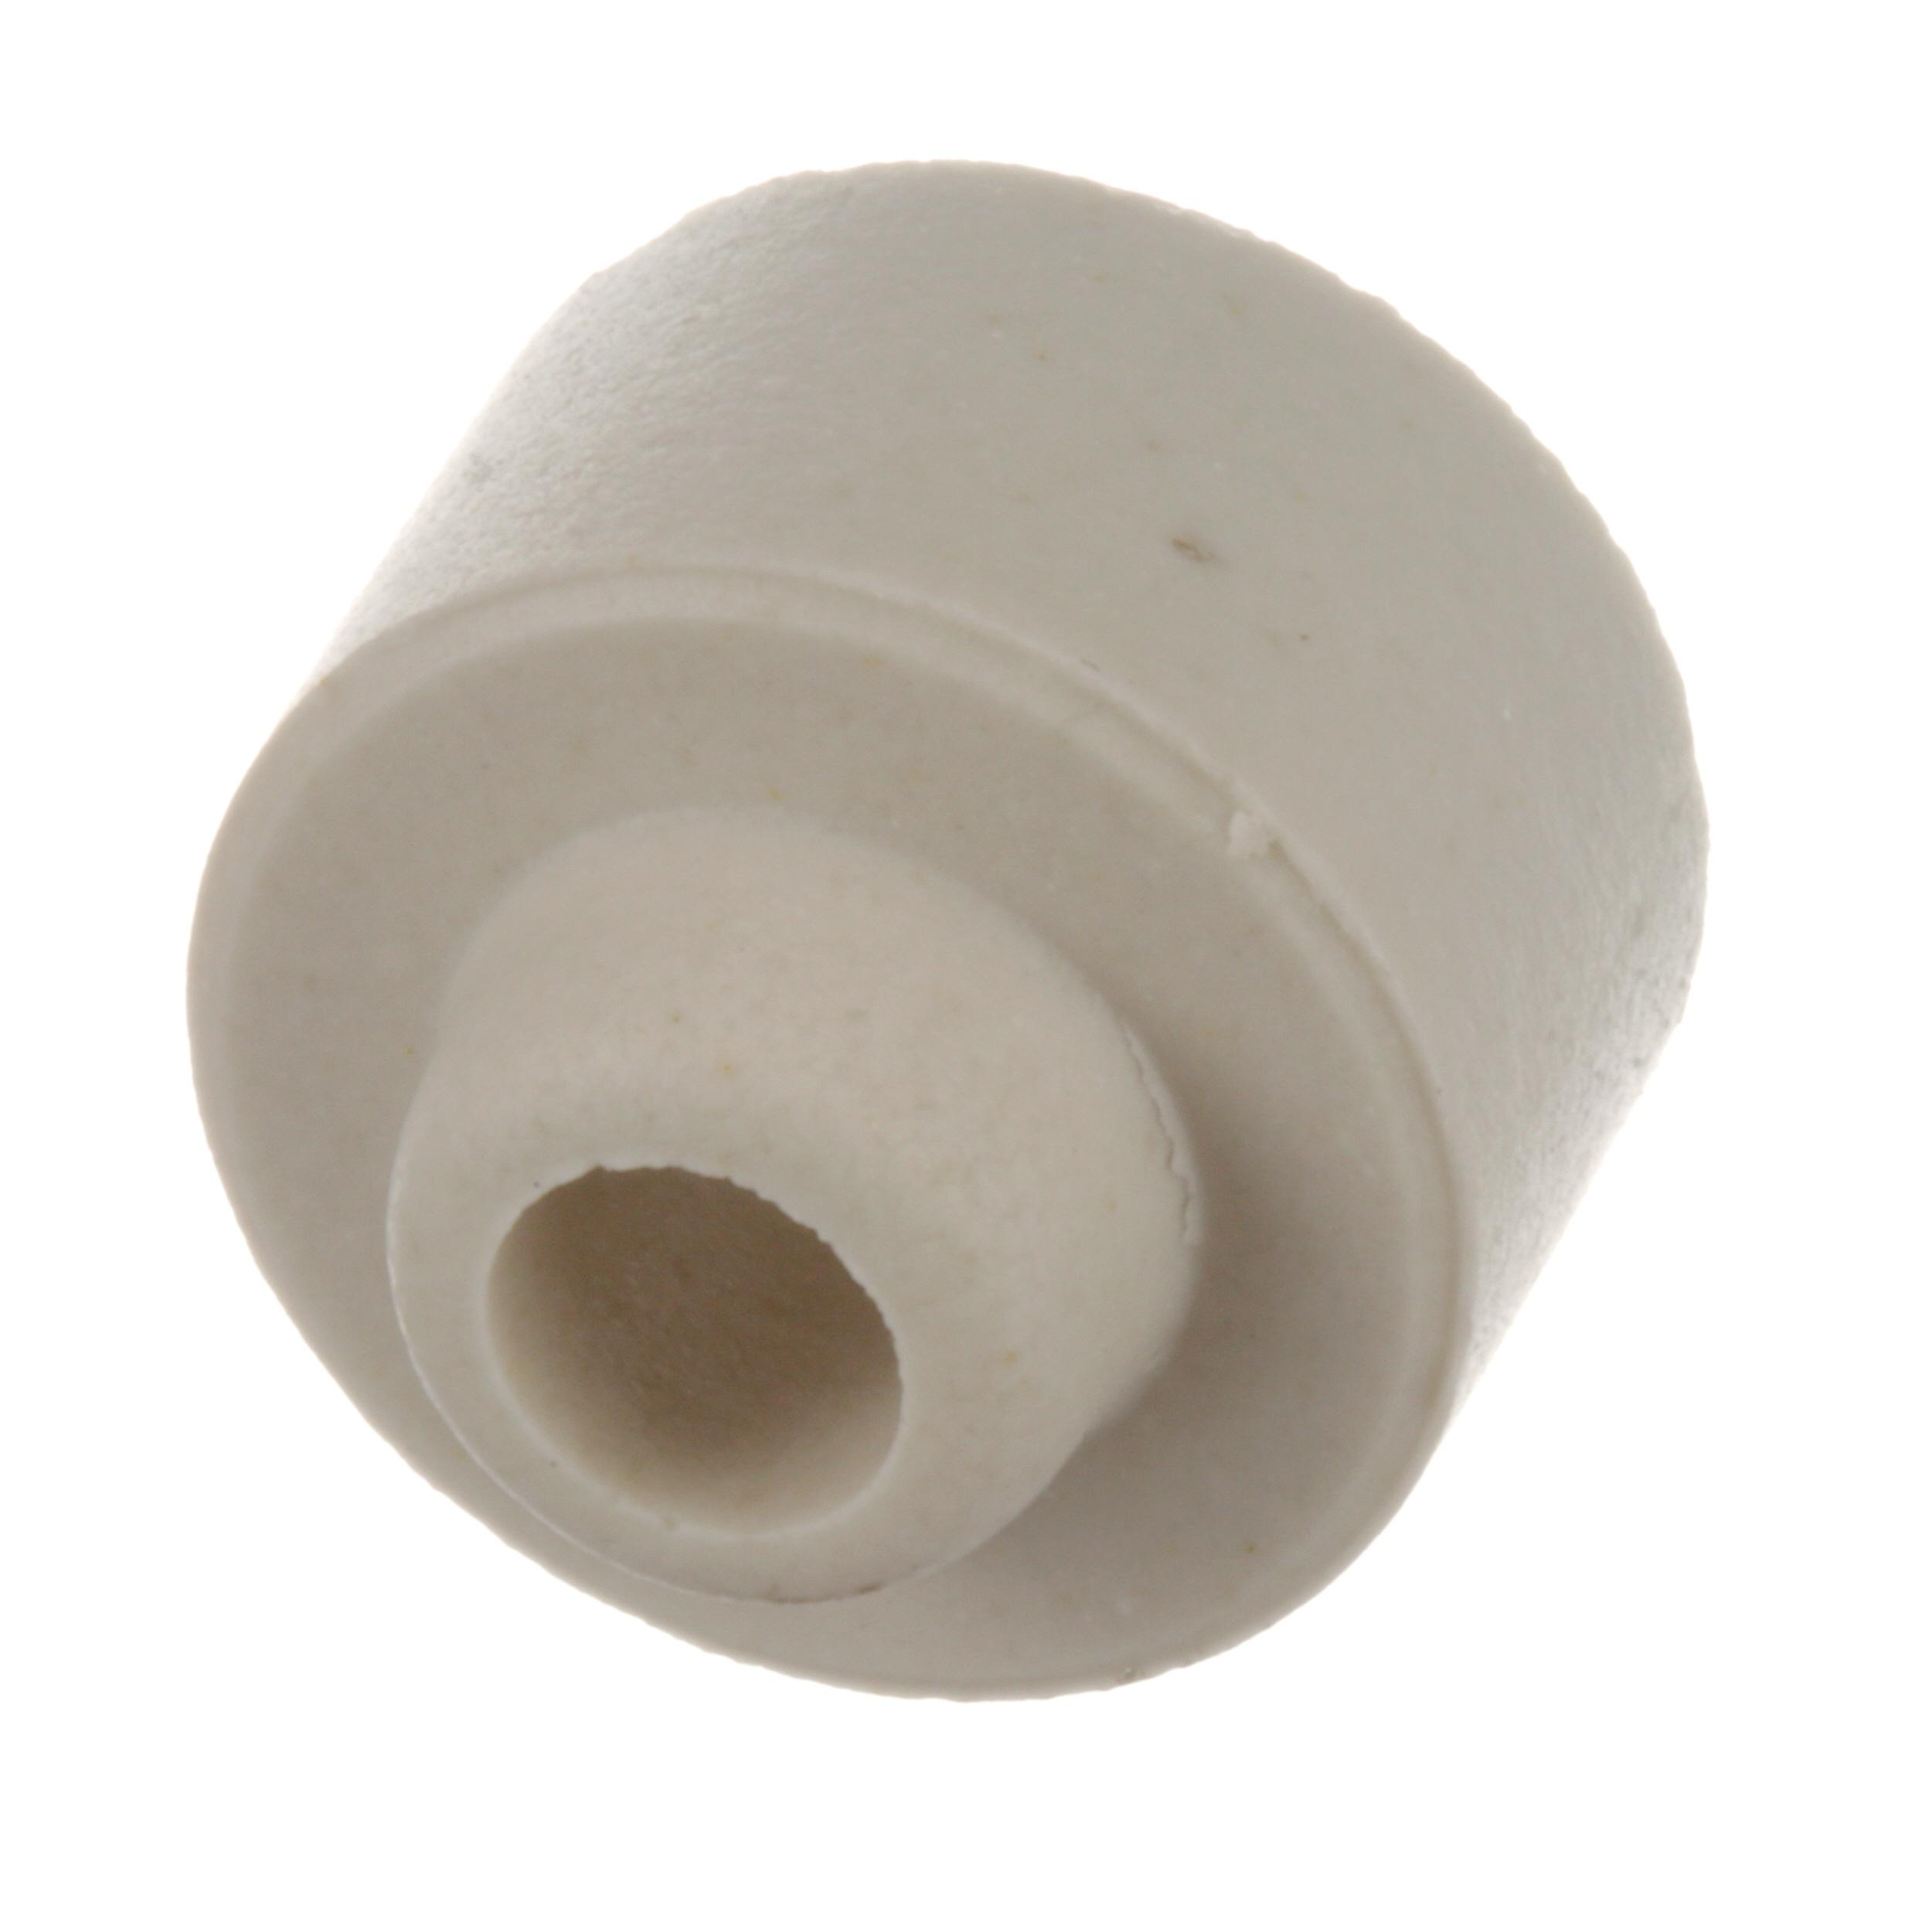 ALTO-SHAAM BUSHING,MALE,STEATITE CERAMIC